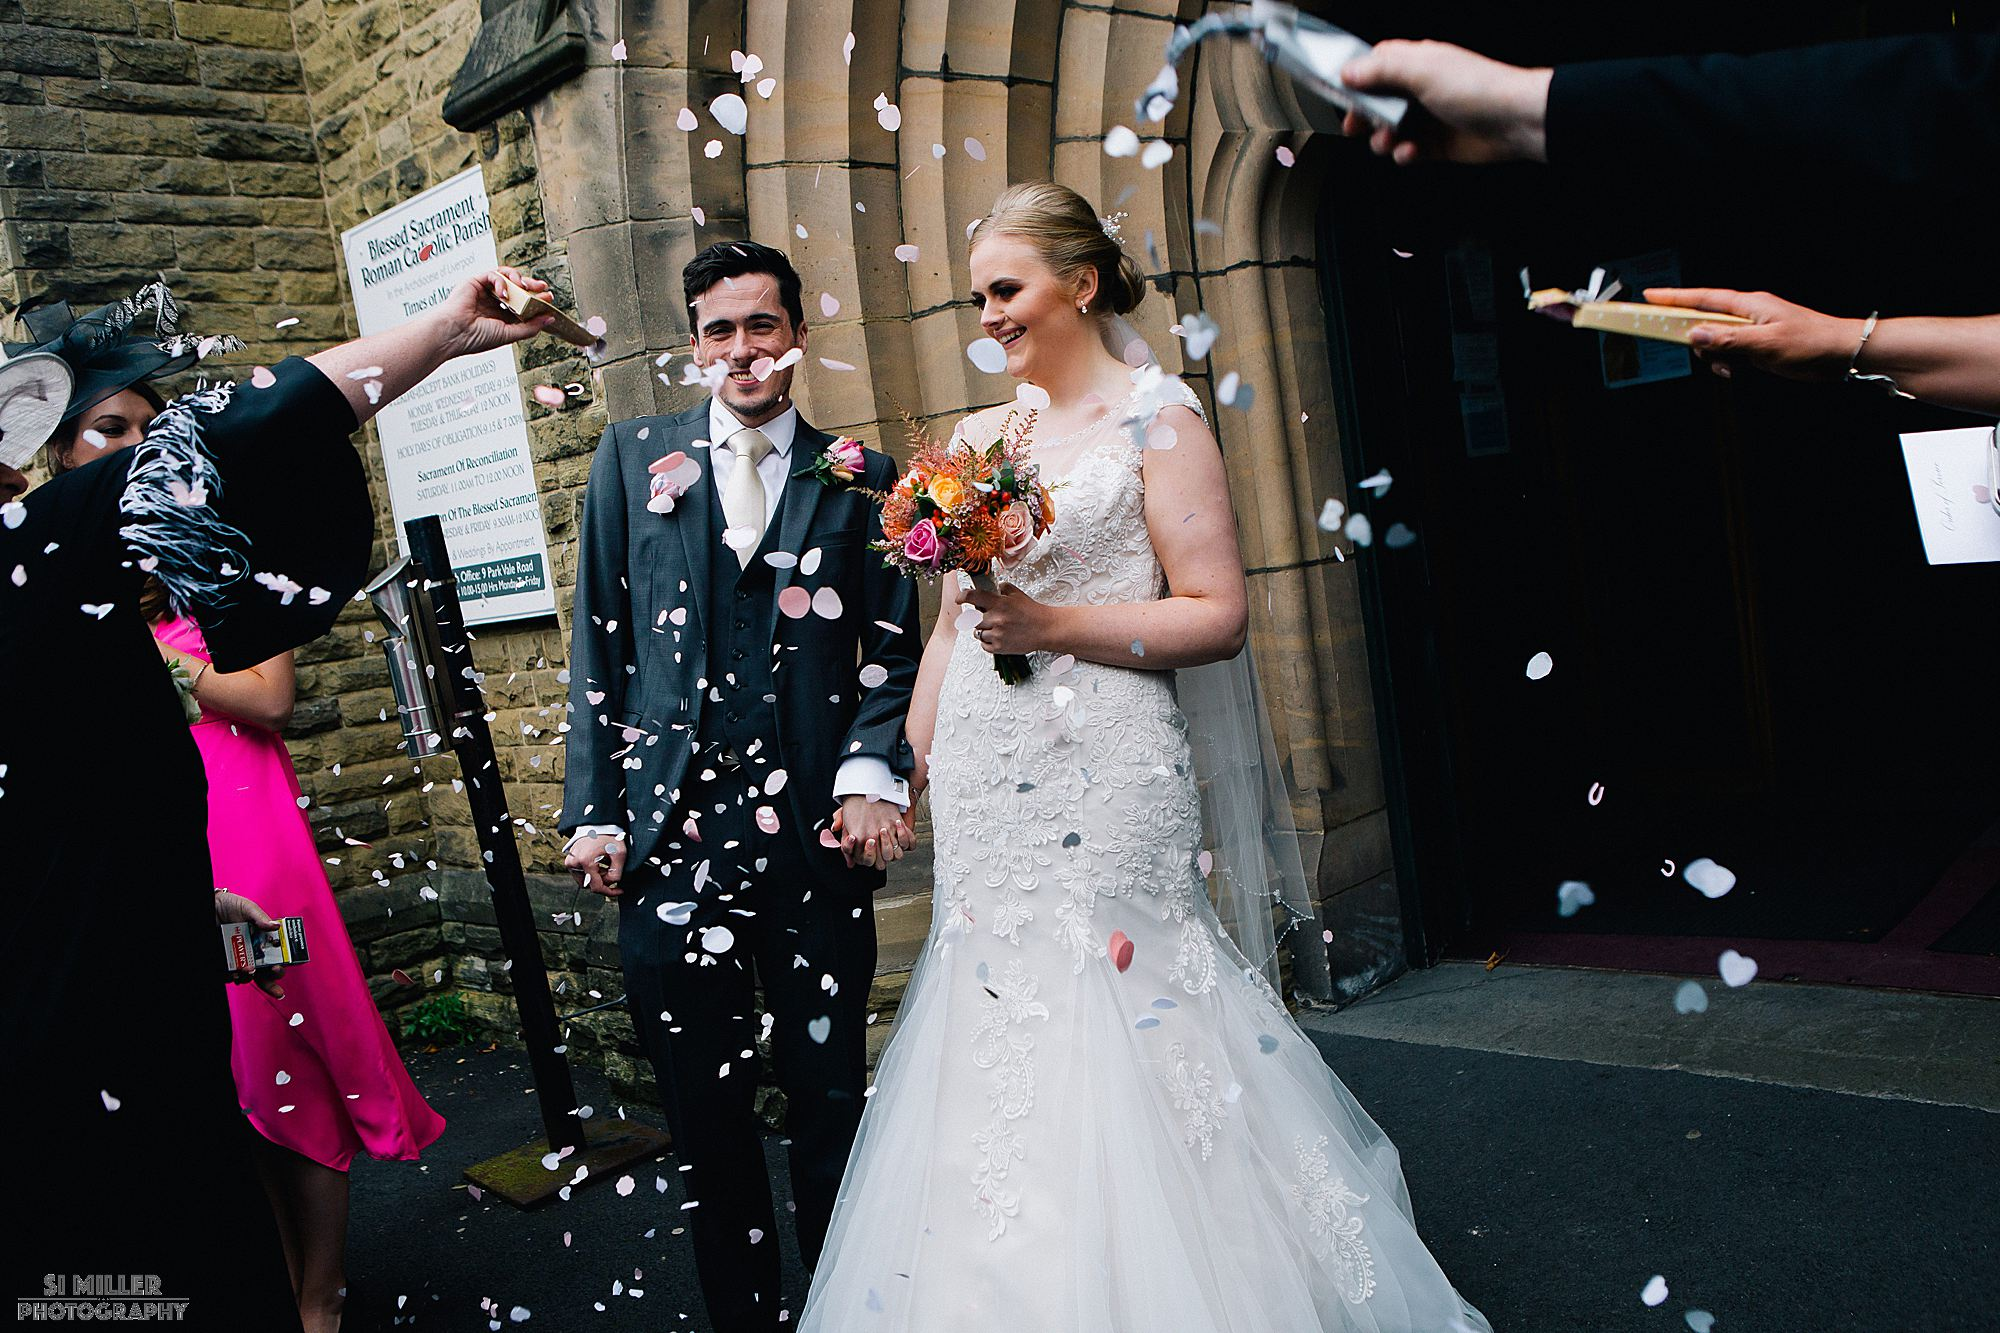 bride and groom getting confetti thrown over them